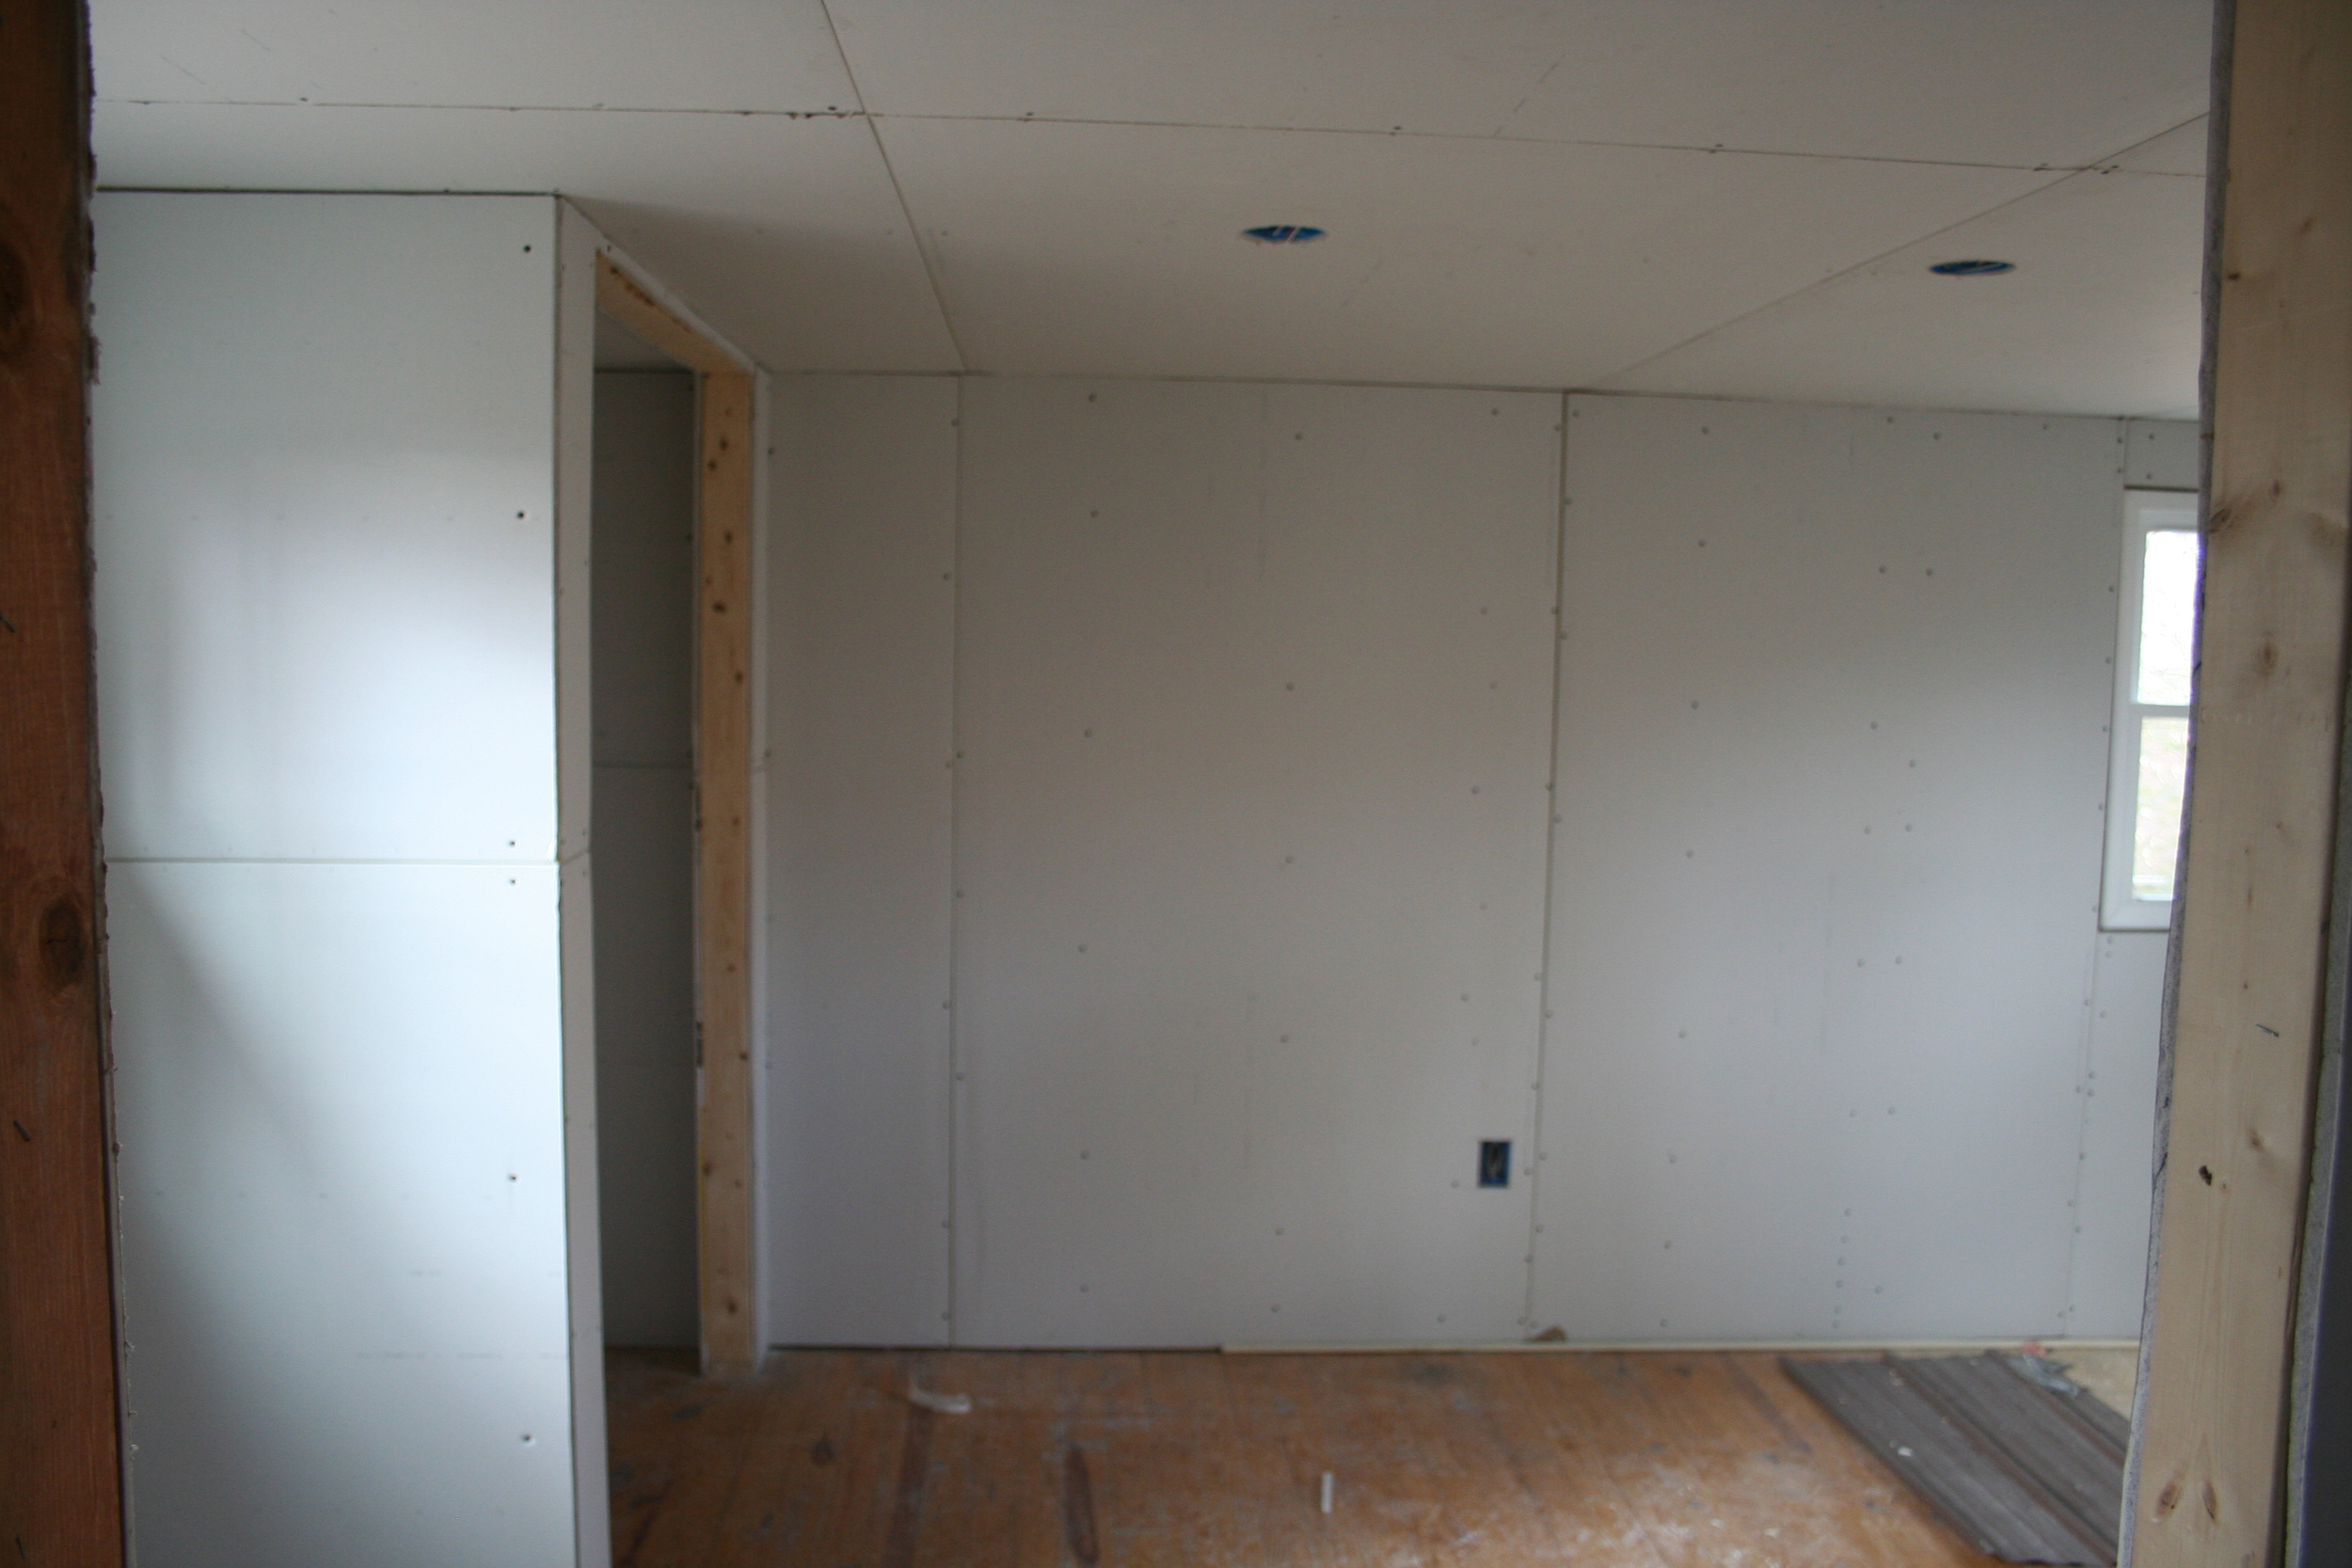 The view from the hallway into the bedroom. This is where the drywalling has begun!